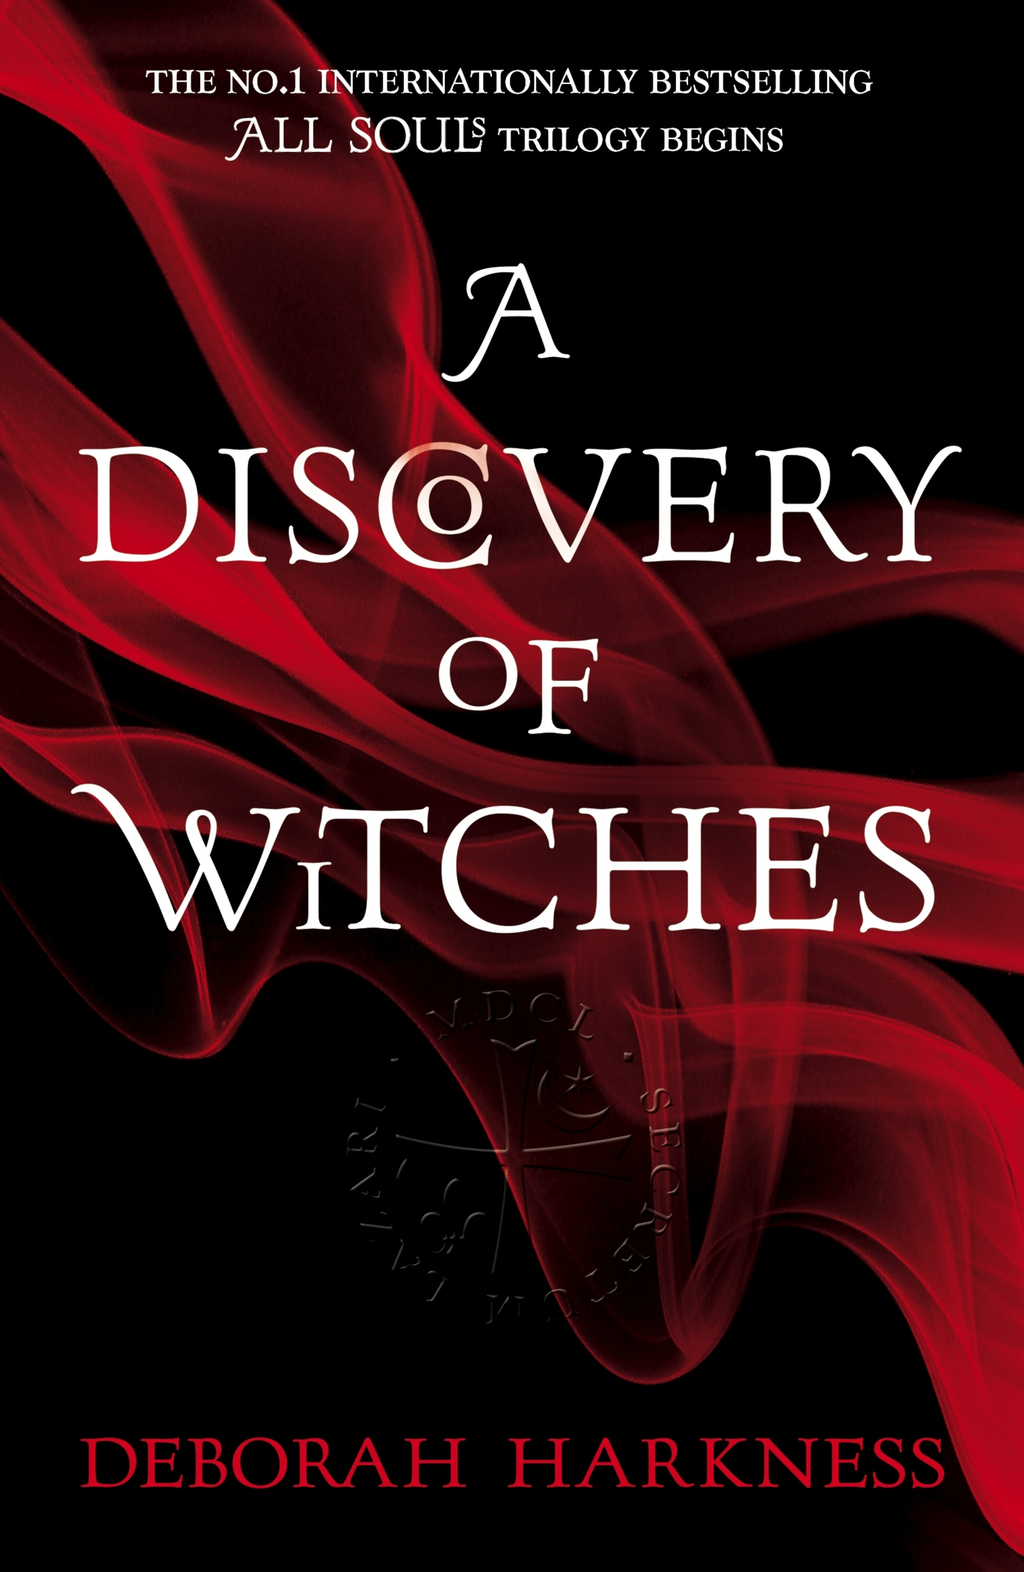 A Discovery of Witches (All Souls 1)